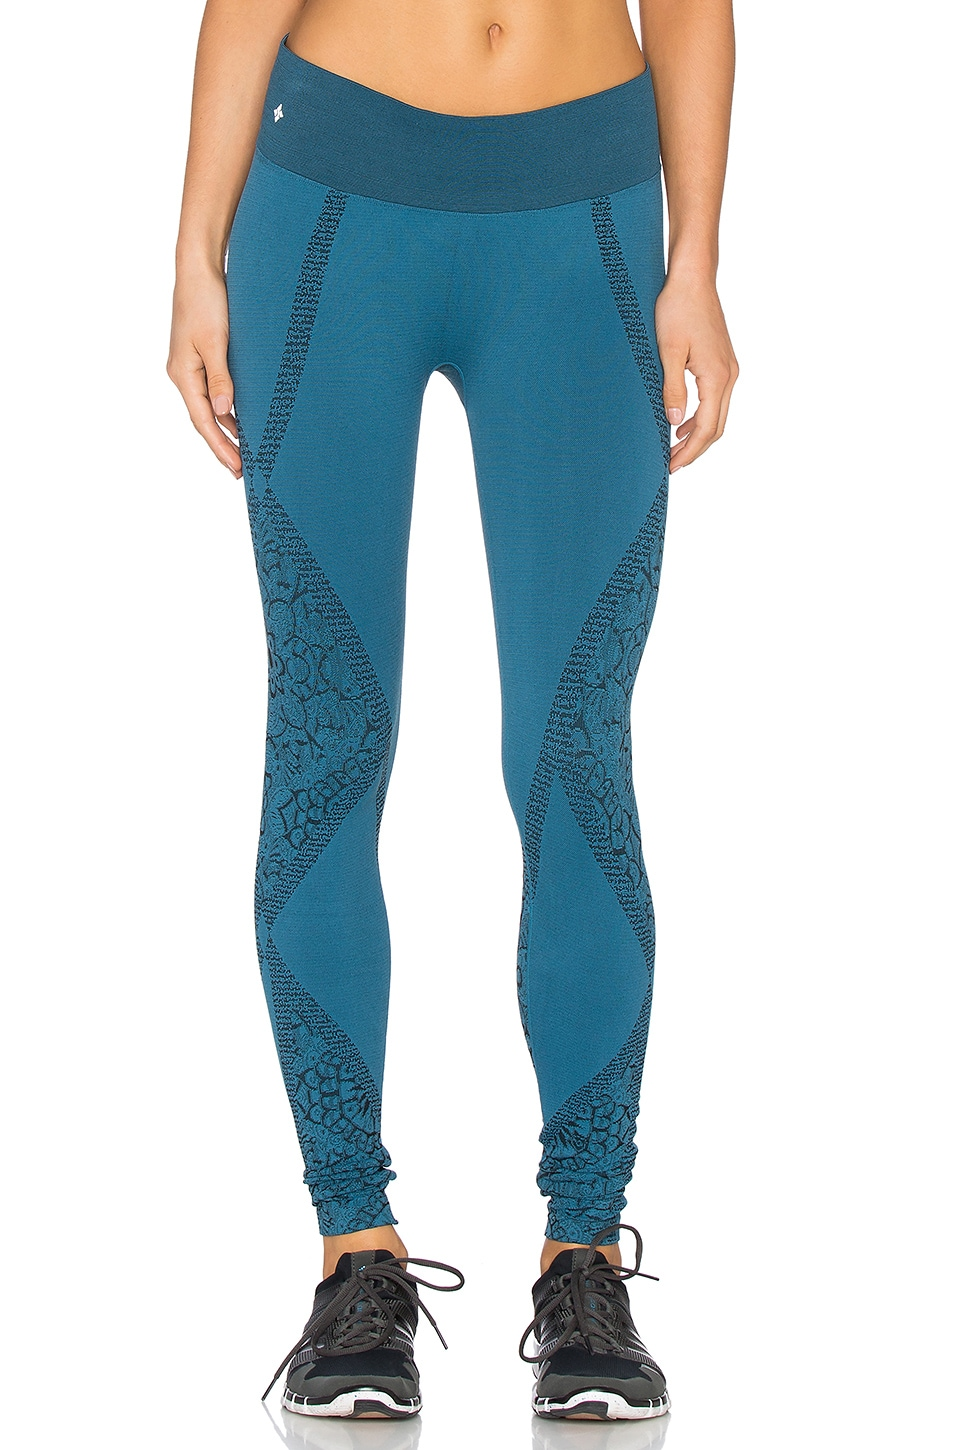 NUX Blossom Legging in Ink Green